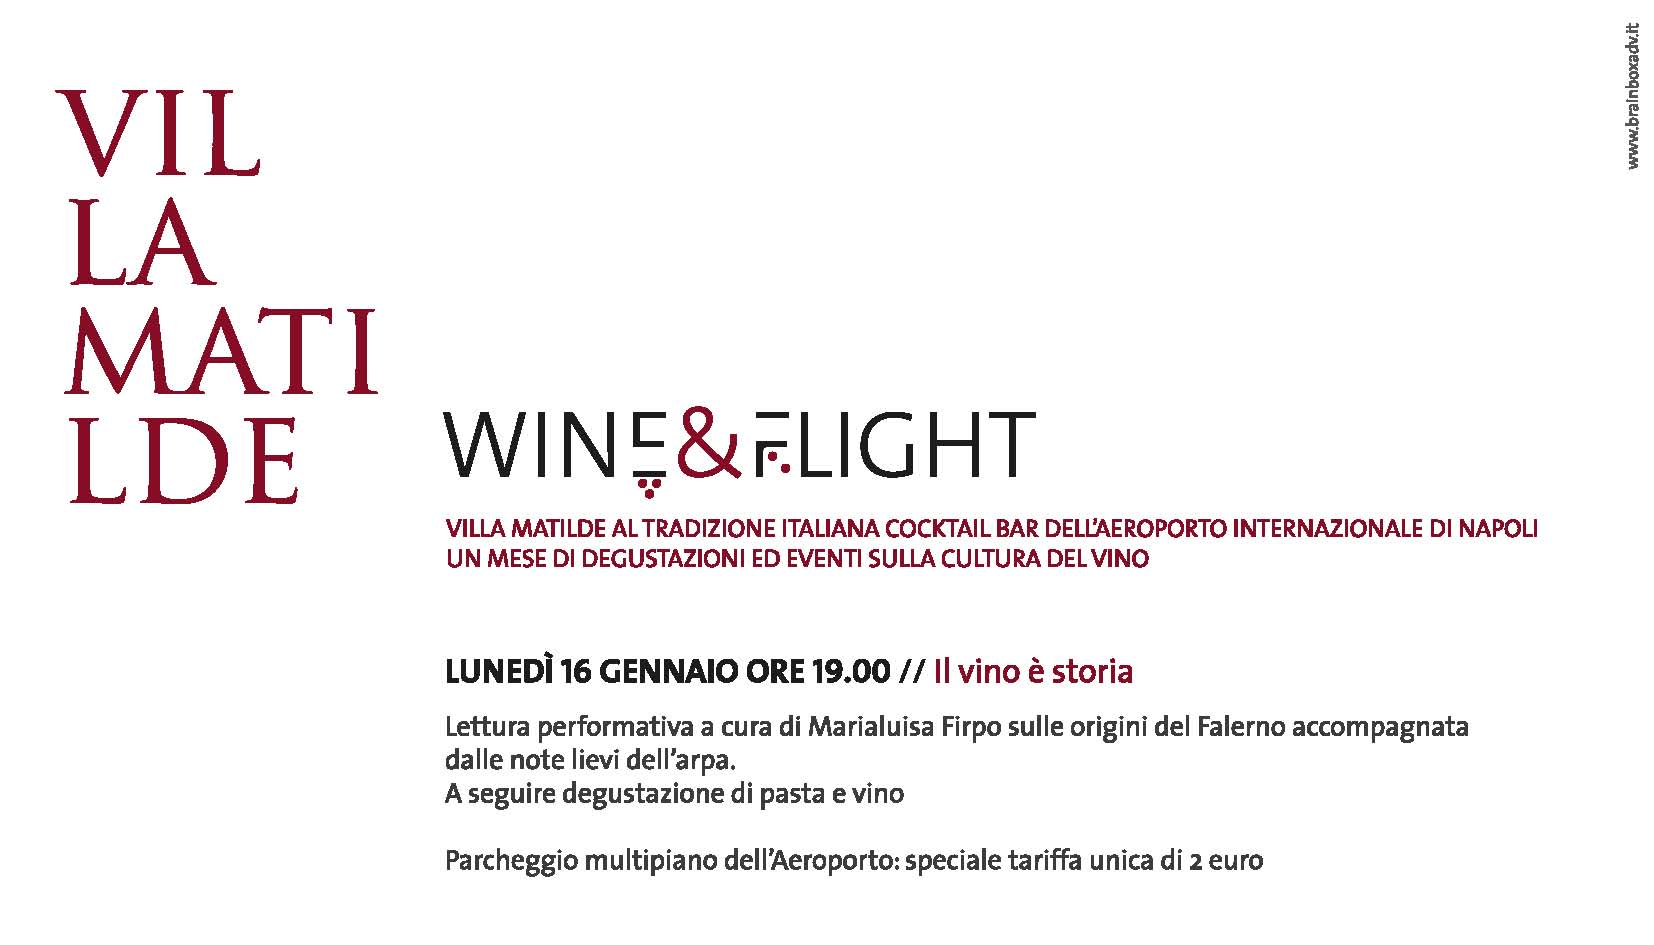 Wine & Flight